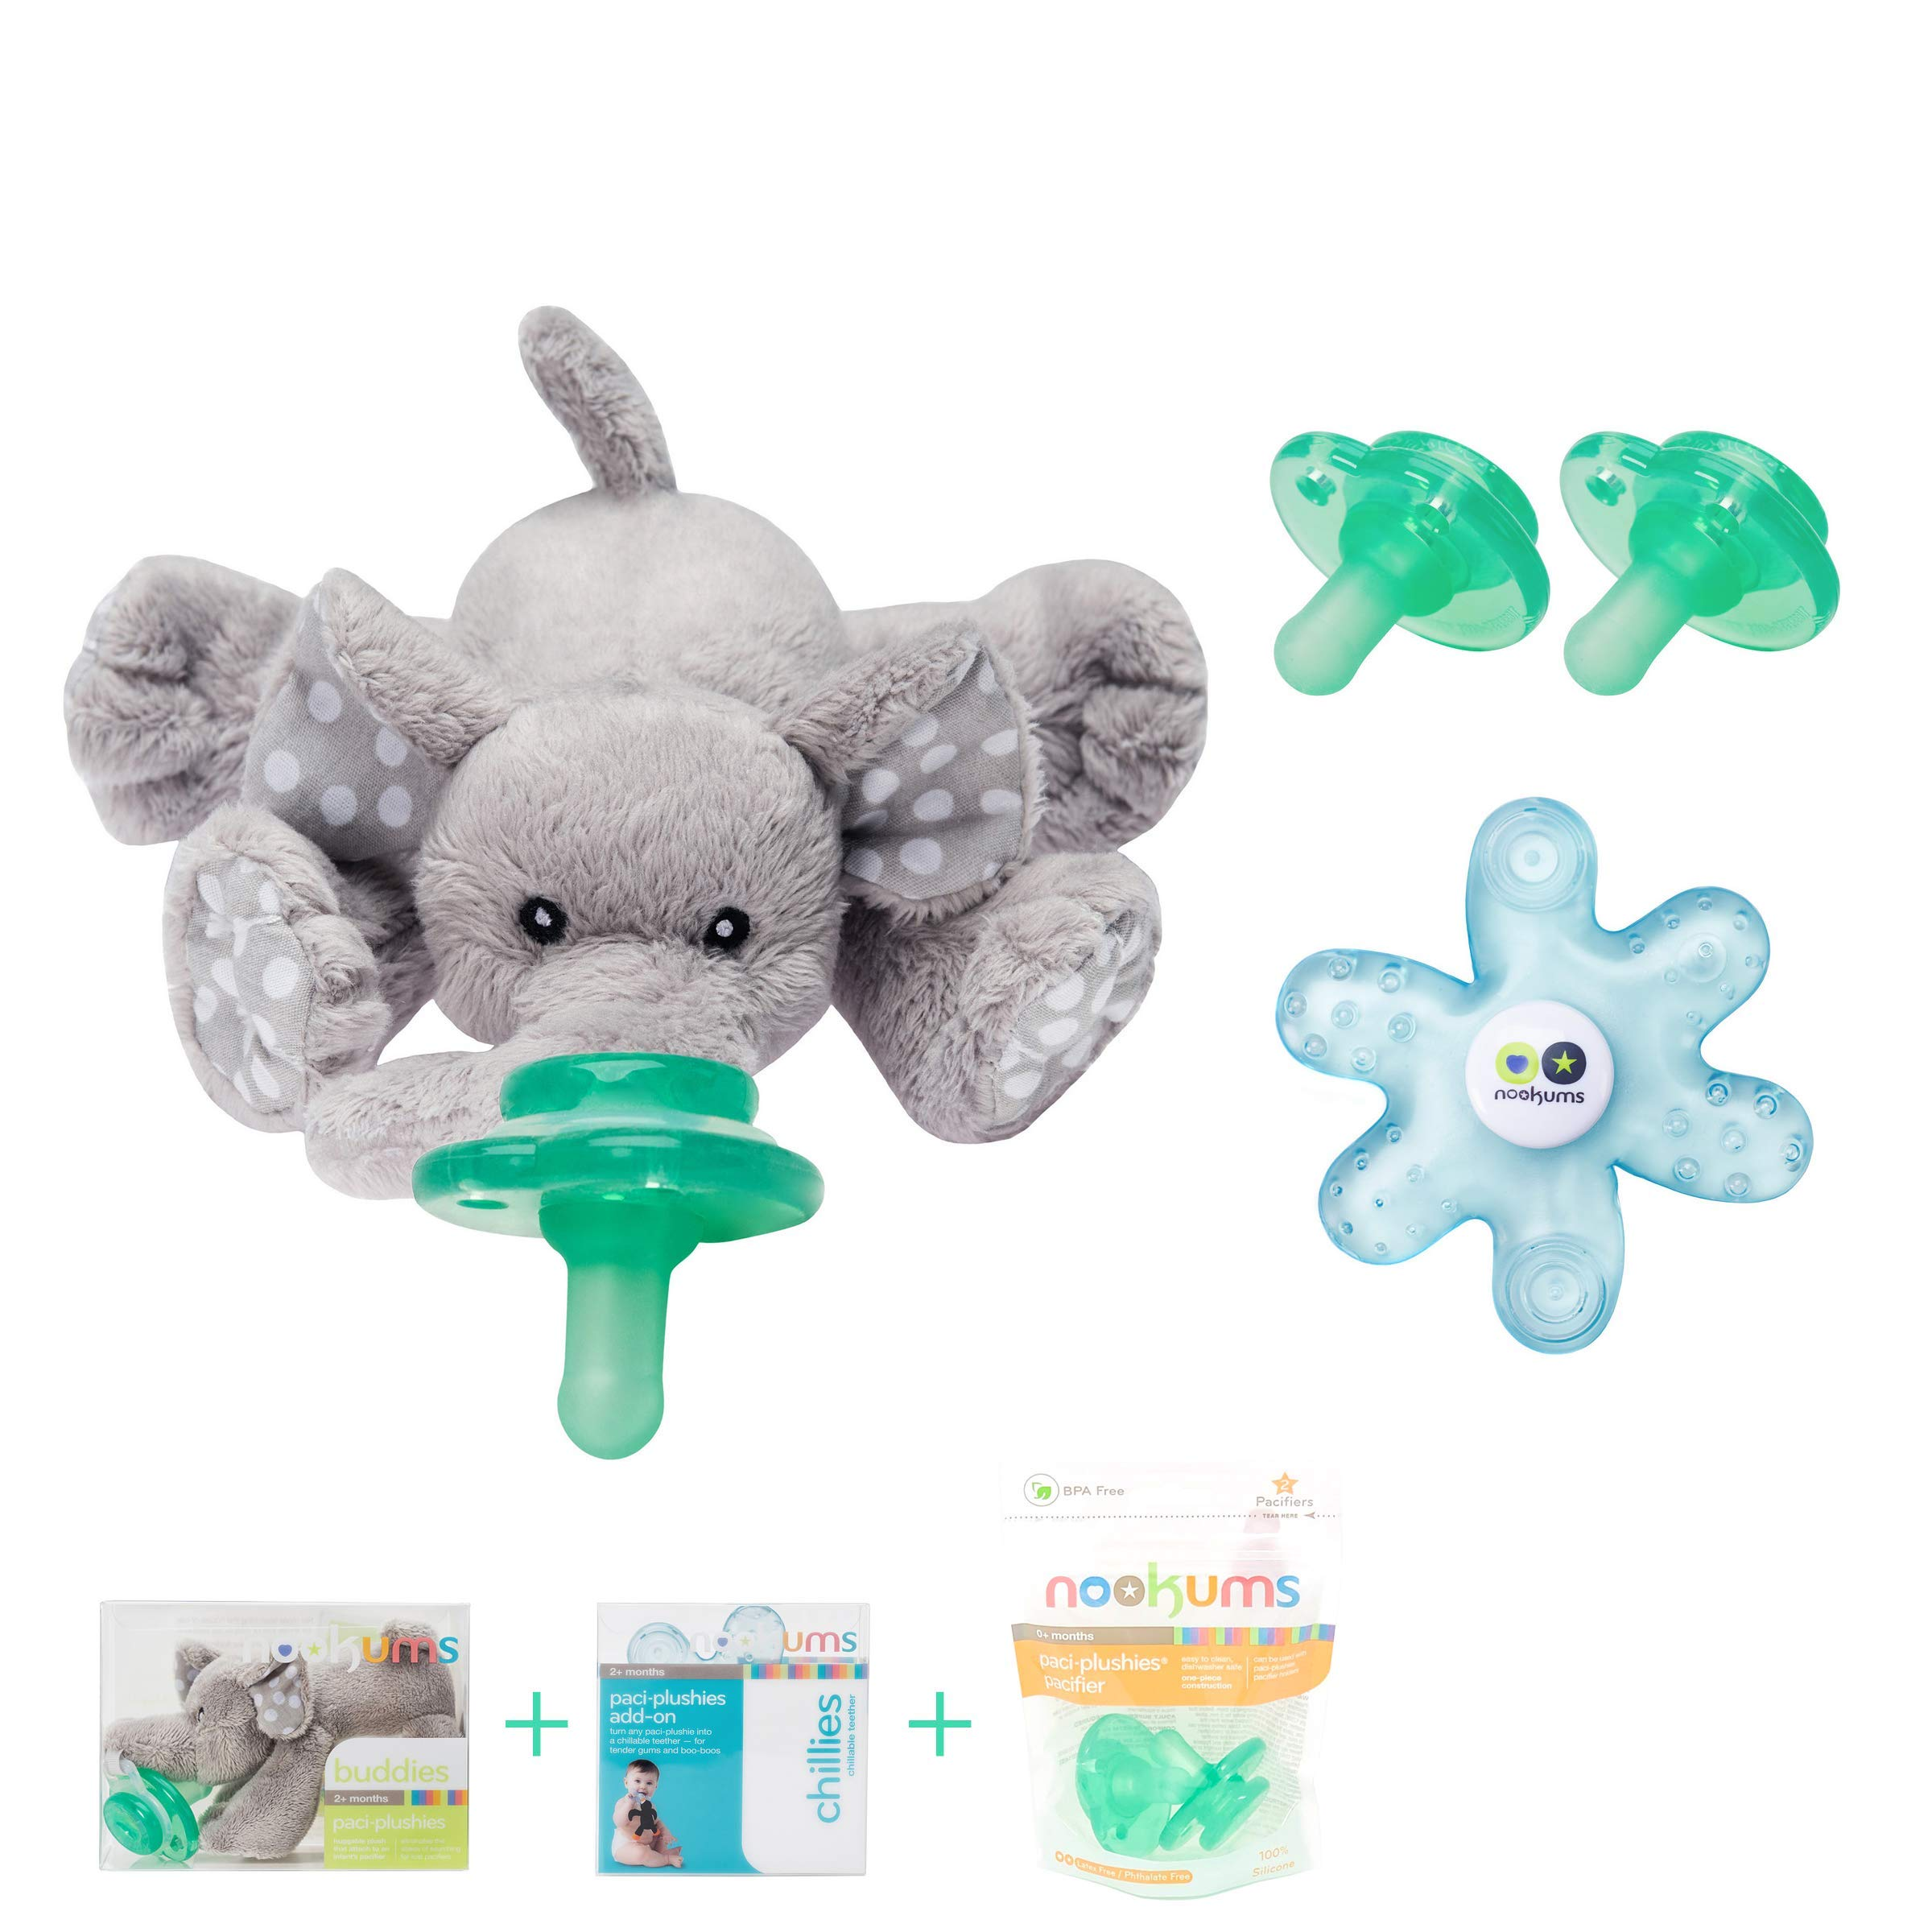 Nookums Paci-Plushies Elephant Baby Gift Set - Pacifier Holder, Teether and Replacement Pacifier 2 Pack (Plush Toy Includes Detachable Pacifier, Use with Multiple Brand Name Pacifiers) by Nookums